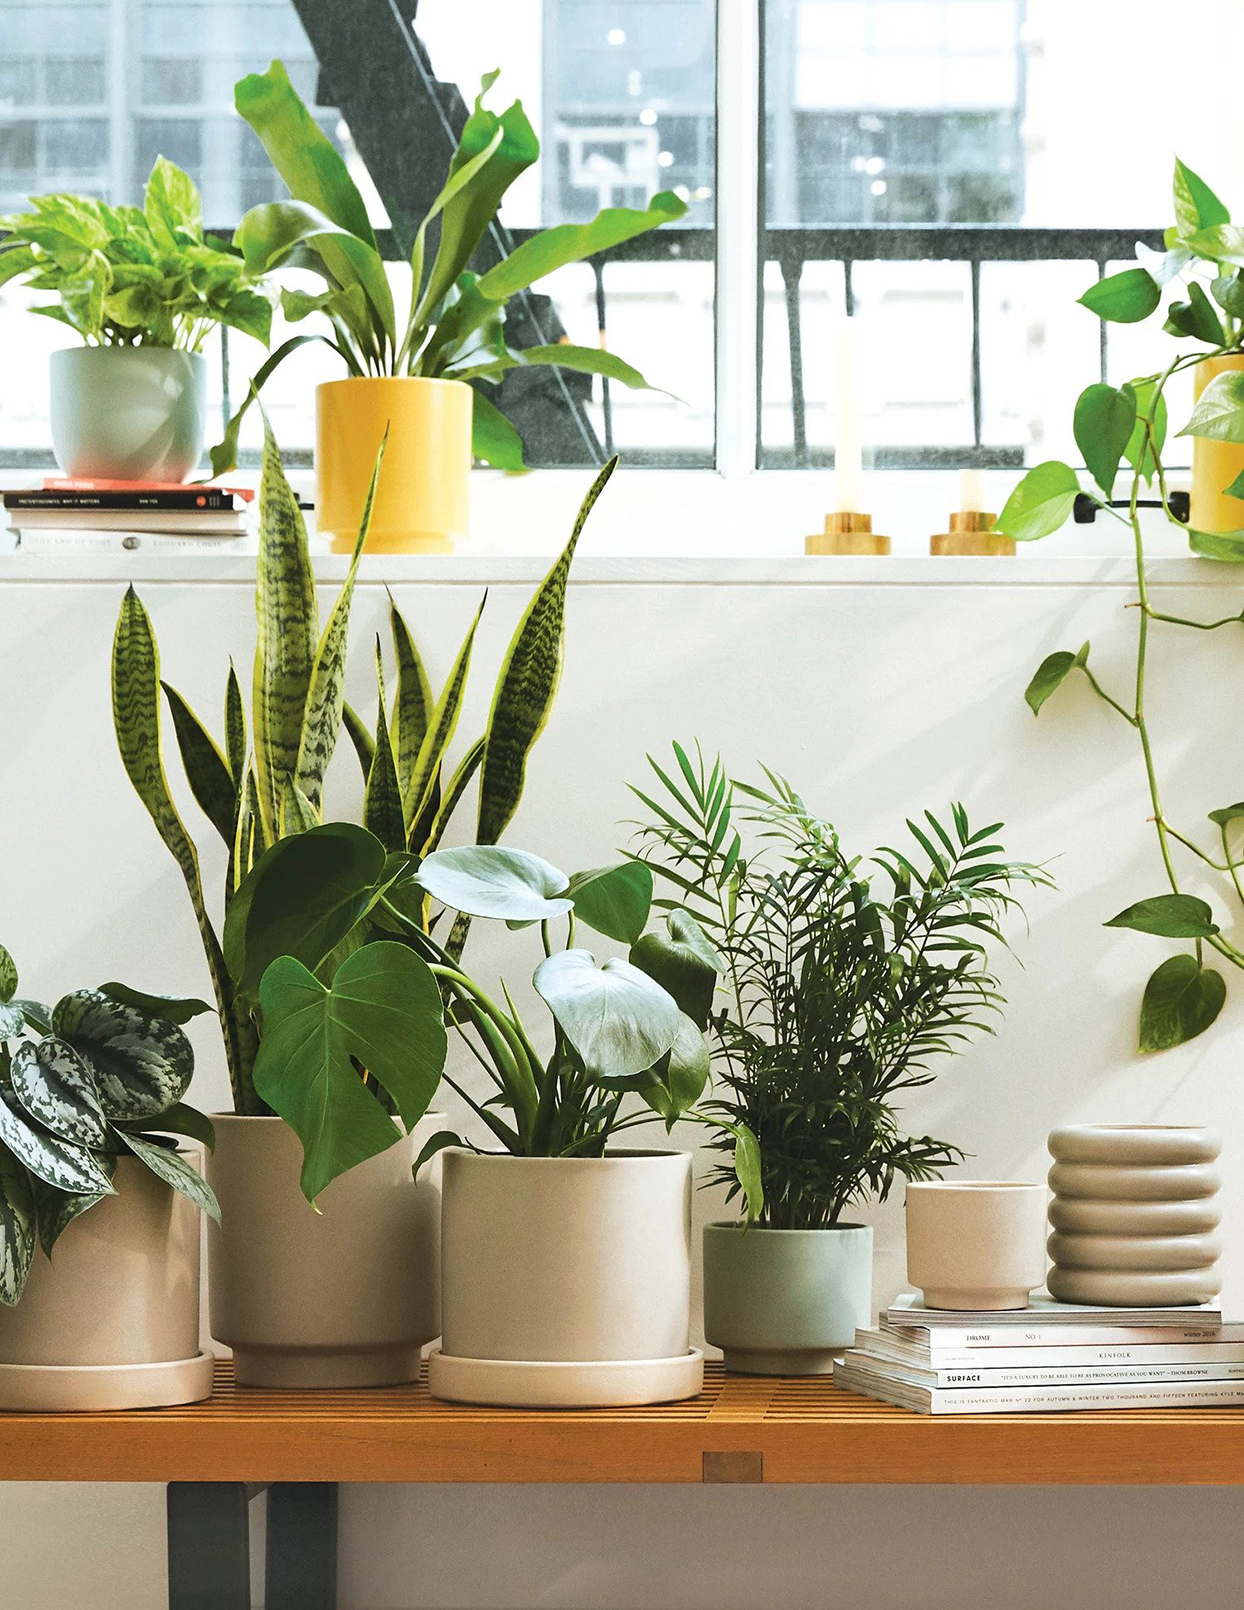 The Sill Now Offers Virtual Appointments to Solve All Your Houseplant Problems